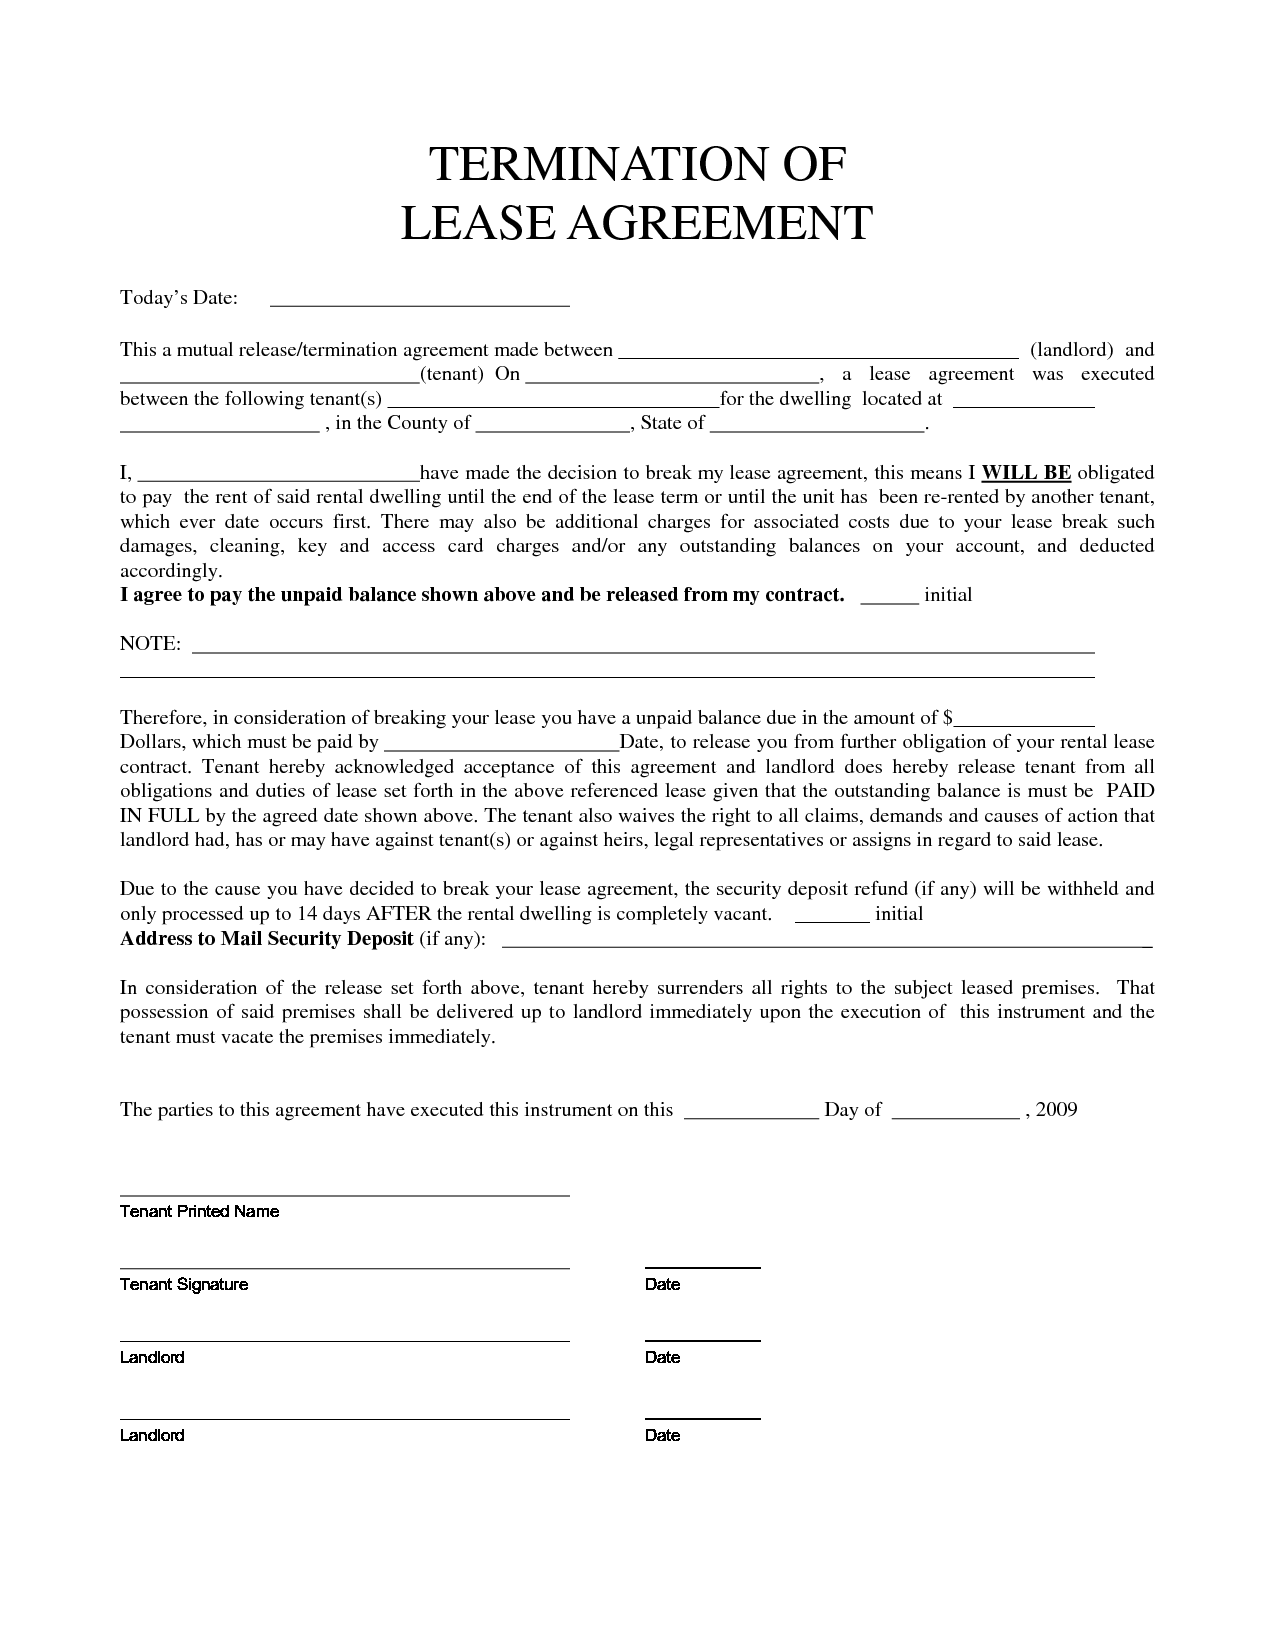 Personal Property Rental Agreement Forms – Tenant Lease Form